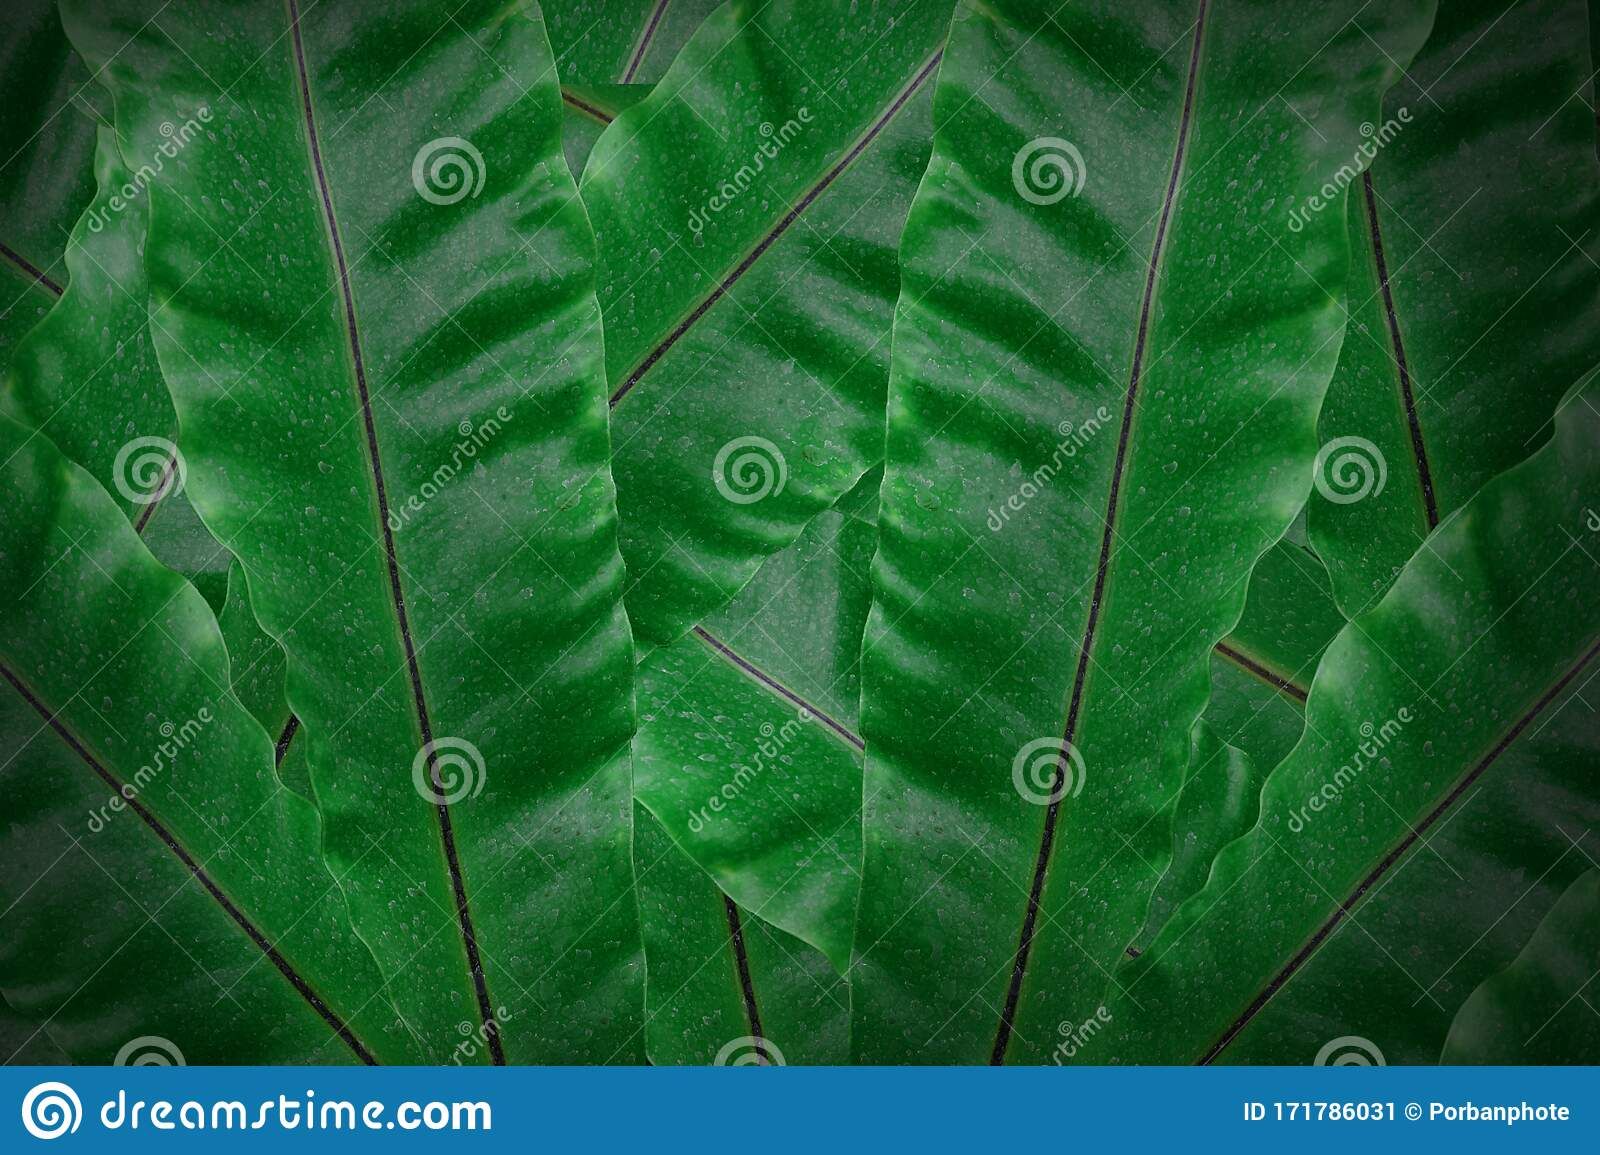 Tropical Green Leaves Background Dark Green Leaf Textured Stock